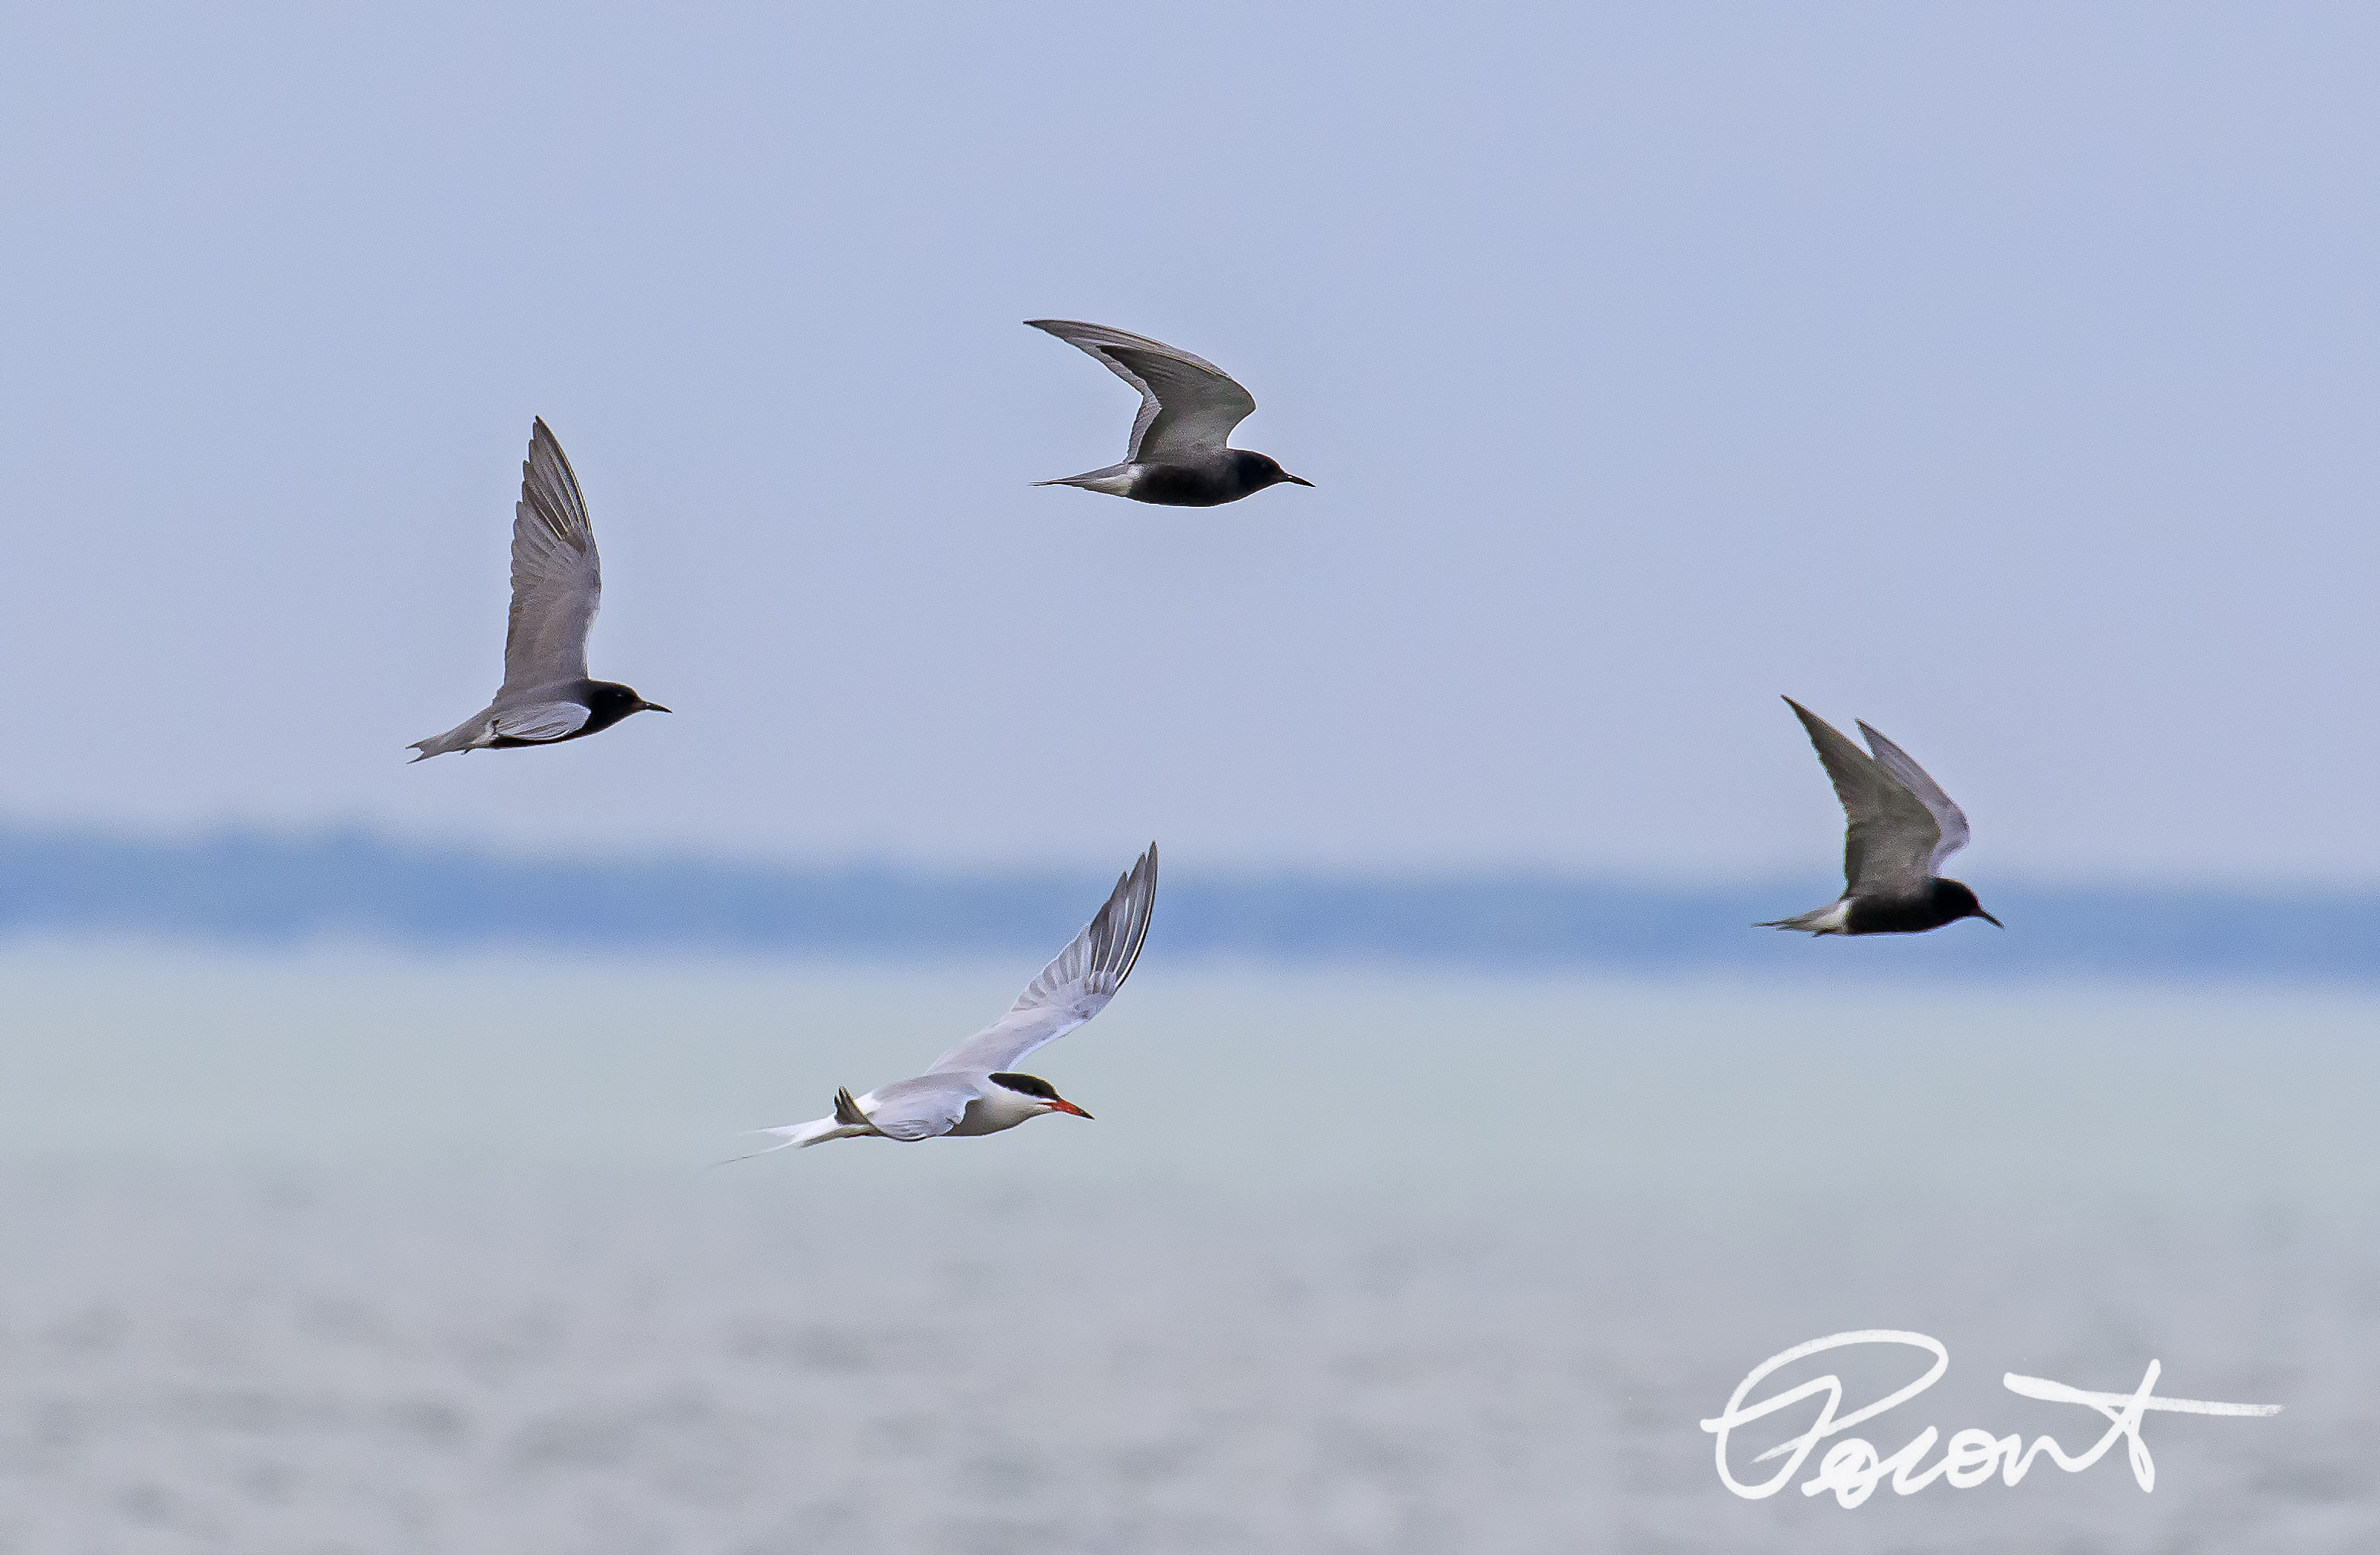 Black Terns and a Common Tern